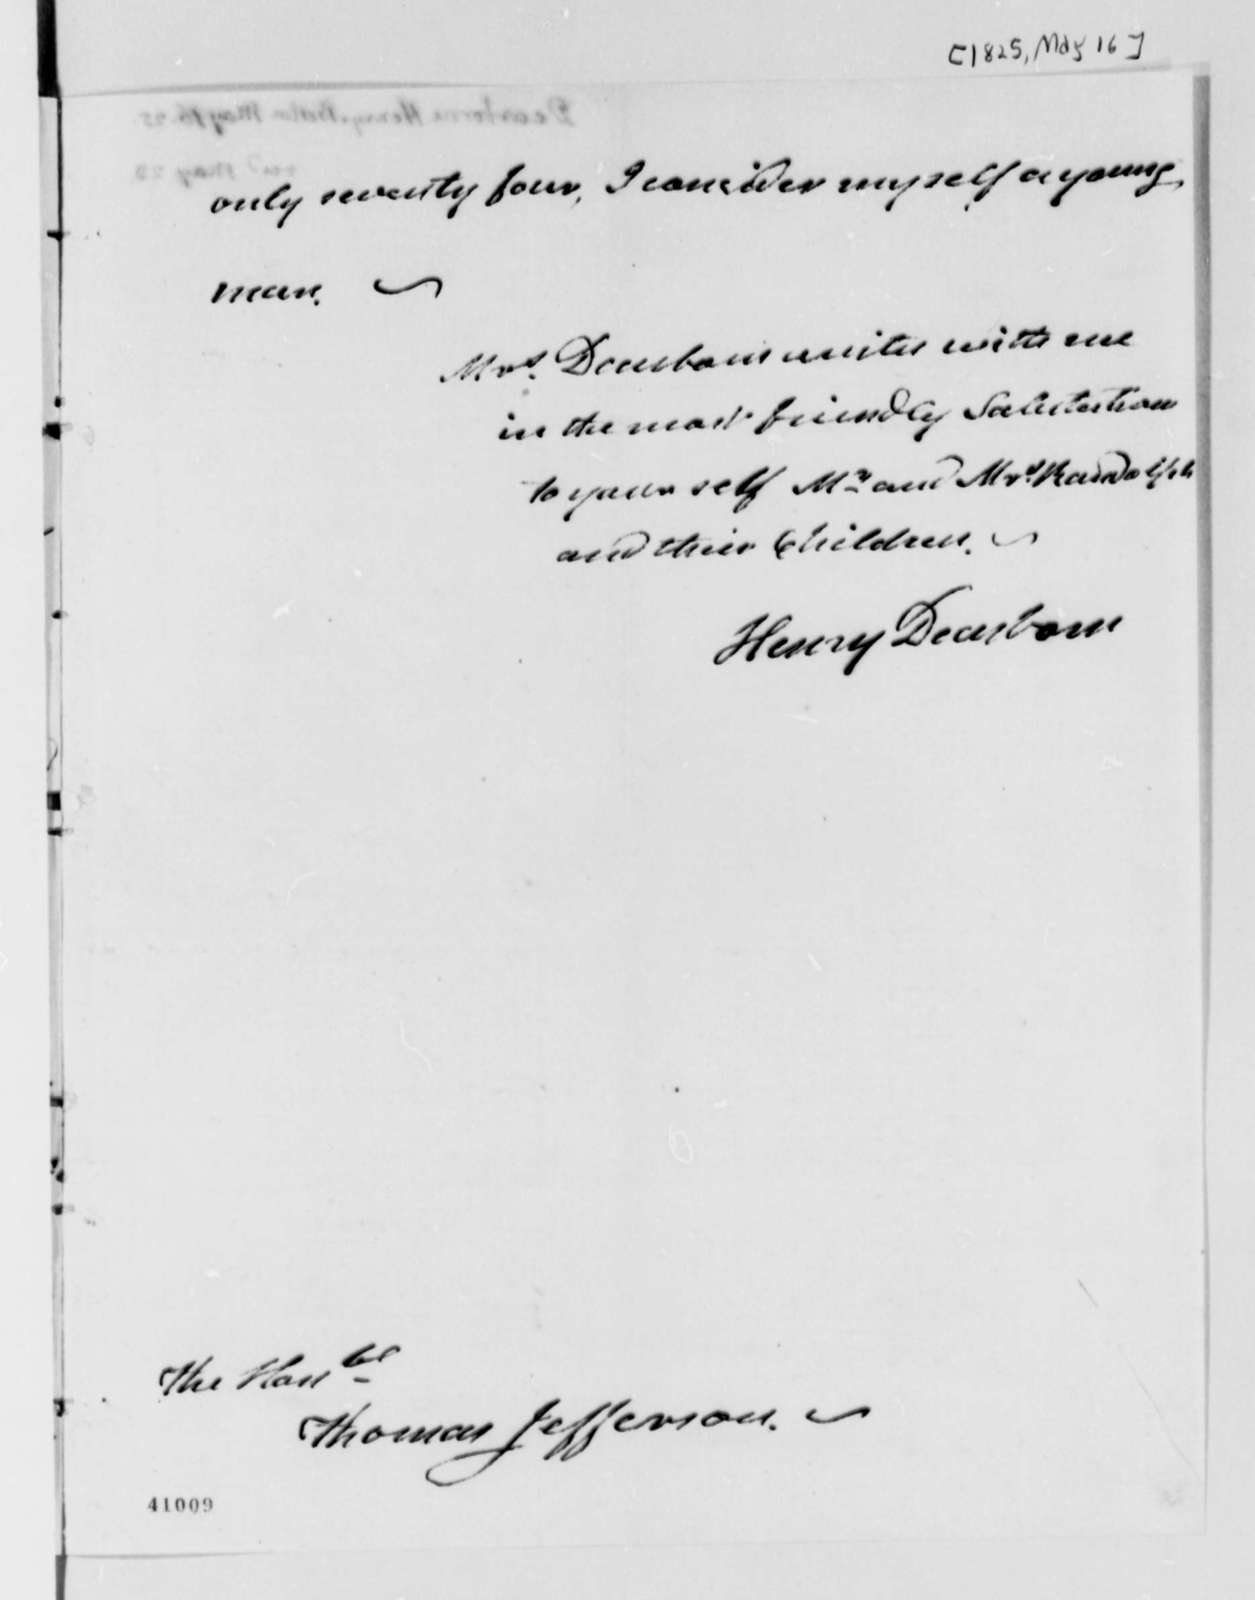 Henry Dearborn to Thomas Jefferson, May 16, 1825